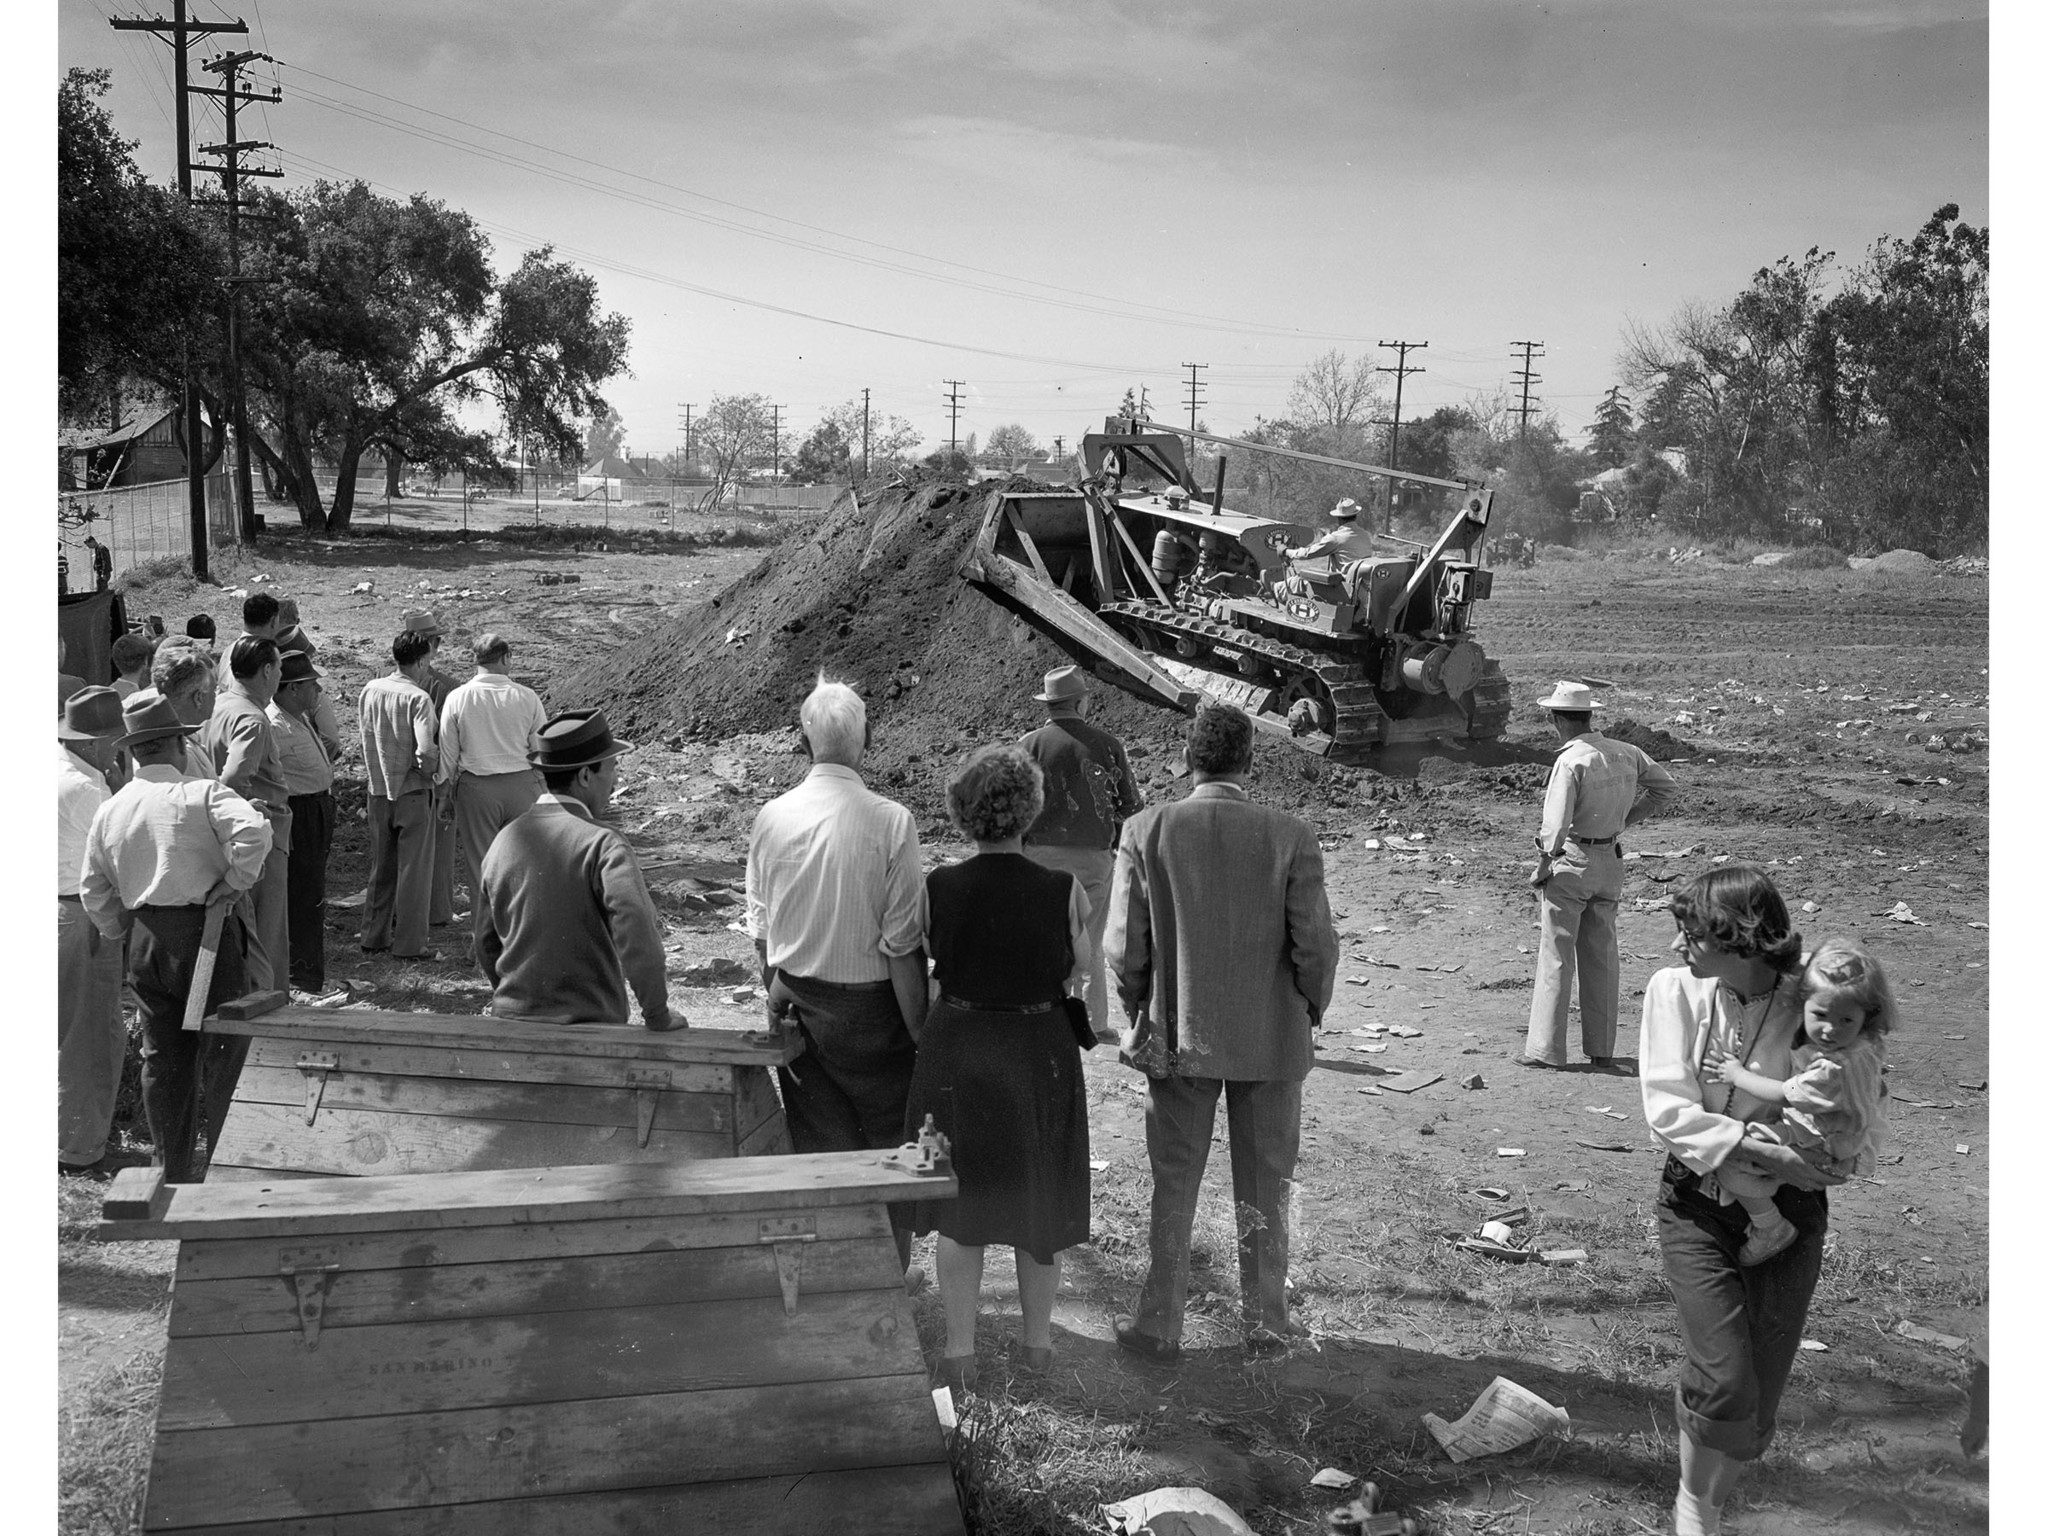 April 11, 1949: A bulldozer filled up holes dug in San Marino rescue effort for Kathy Fiscus. This p